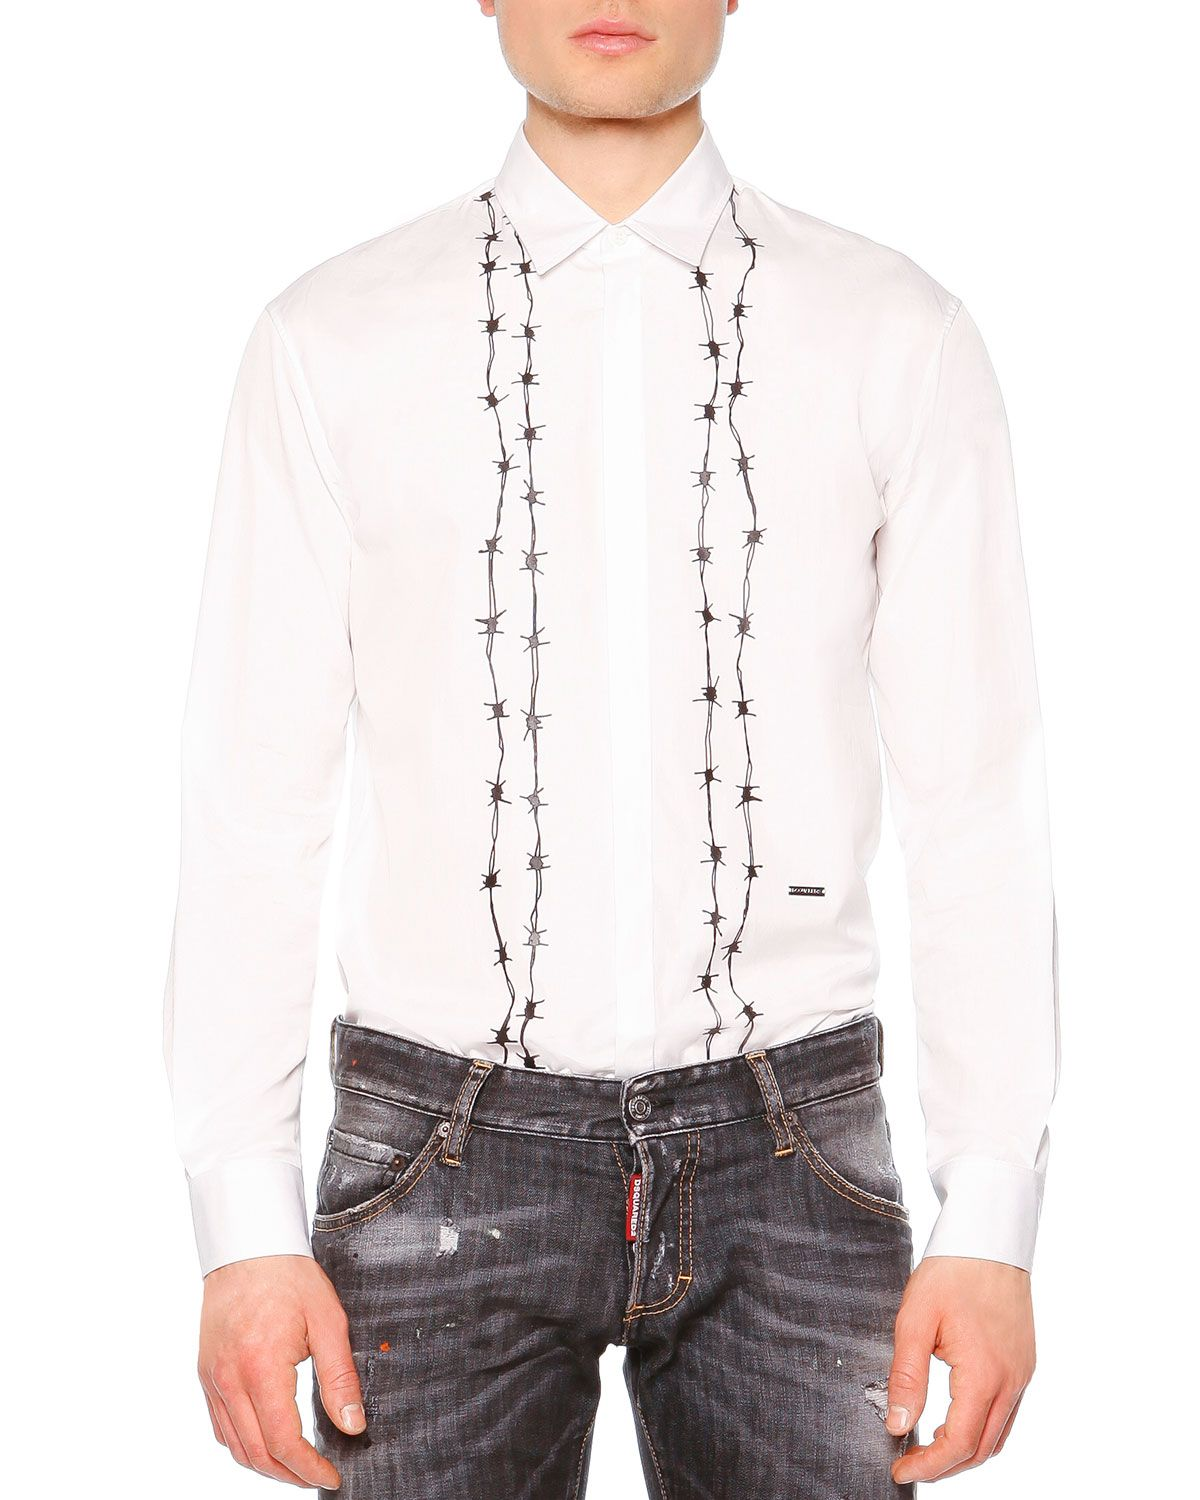 Barbed-Wire Print Long-Sleeve Shirt, White, Men s, Size  56 - Dsquared2.  Find this Pin and more on  Clothing   ... ae83c80e016c